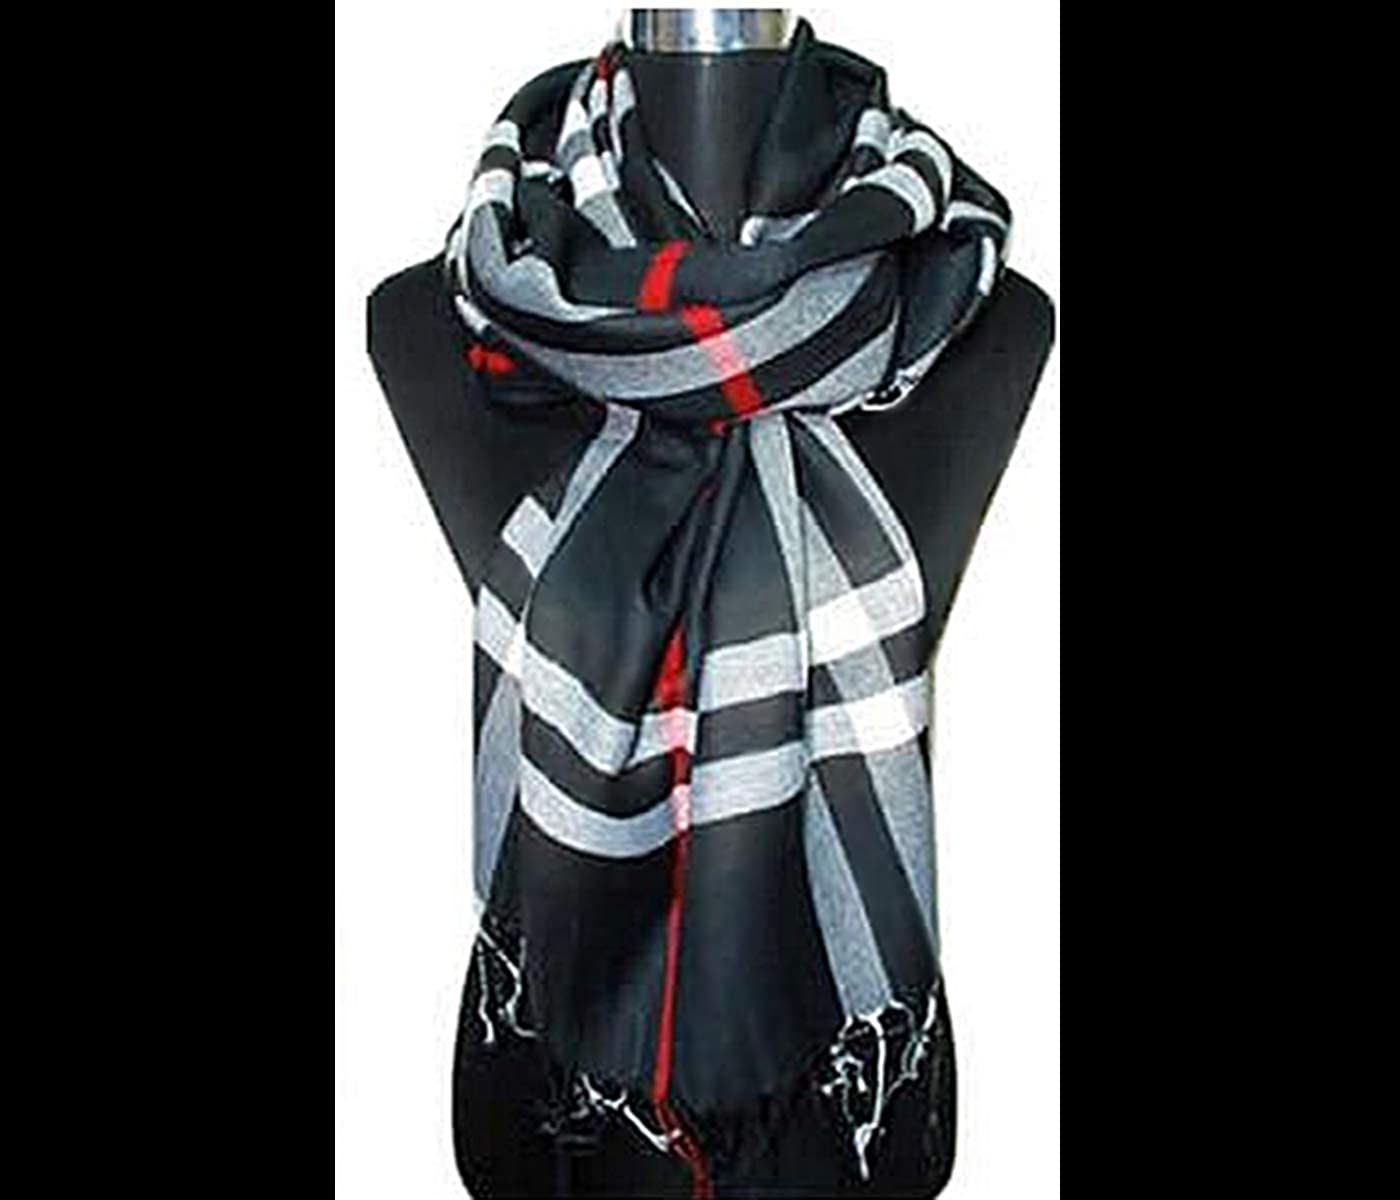 Game of Thrones Viscose Scarf Westeros Map Infinity New sf7dxbgth